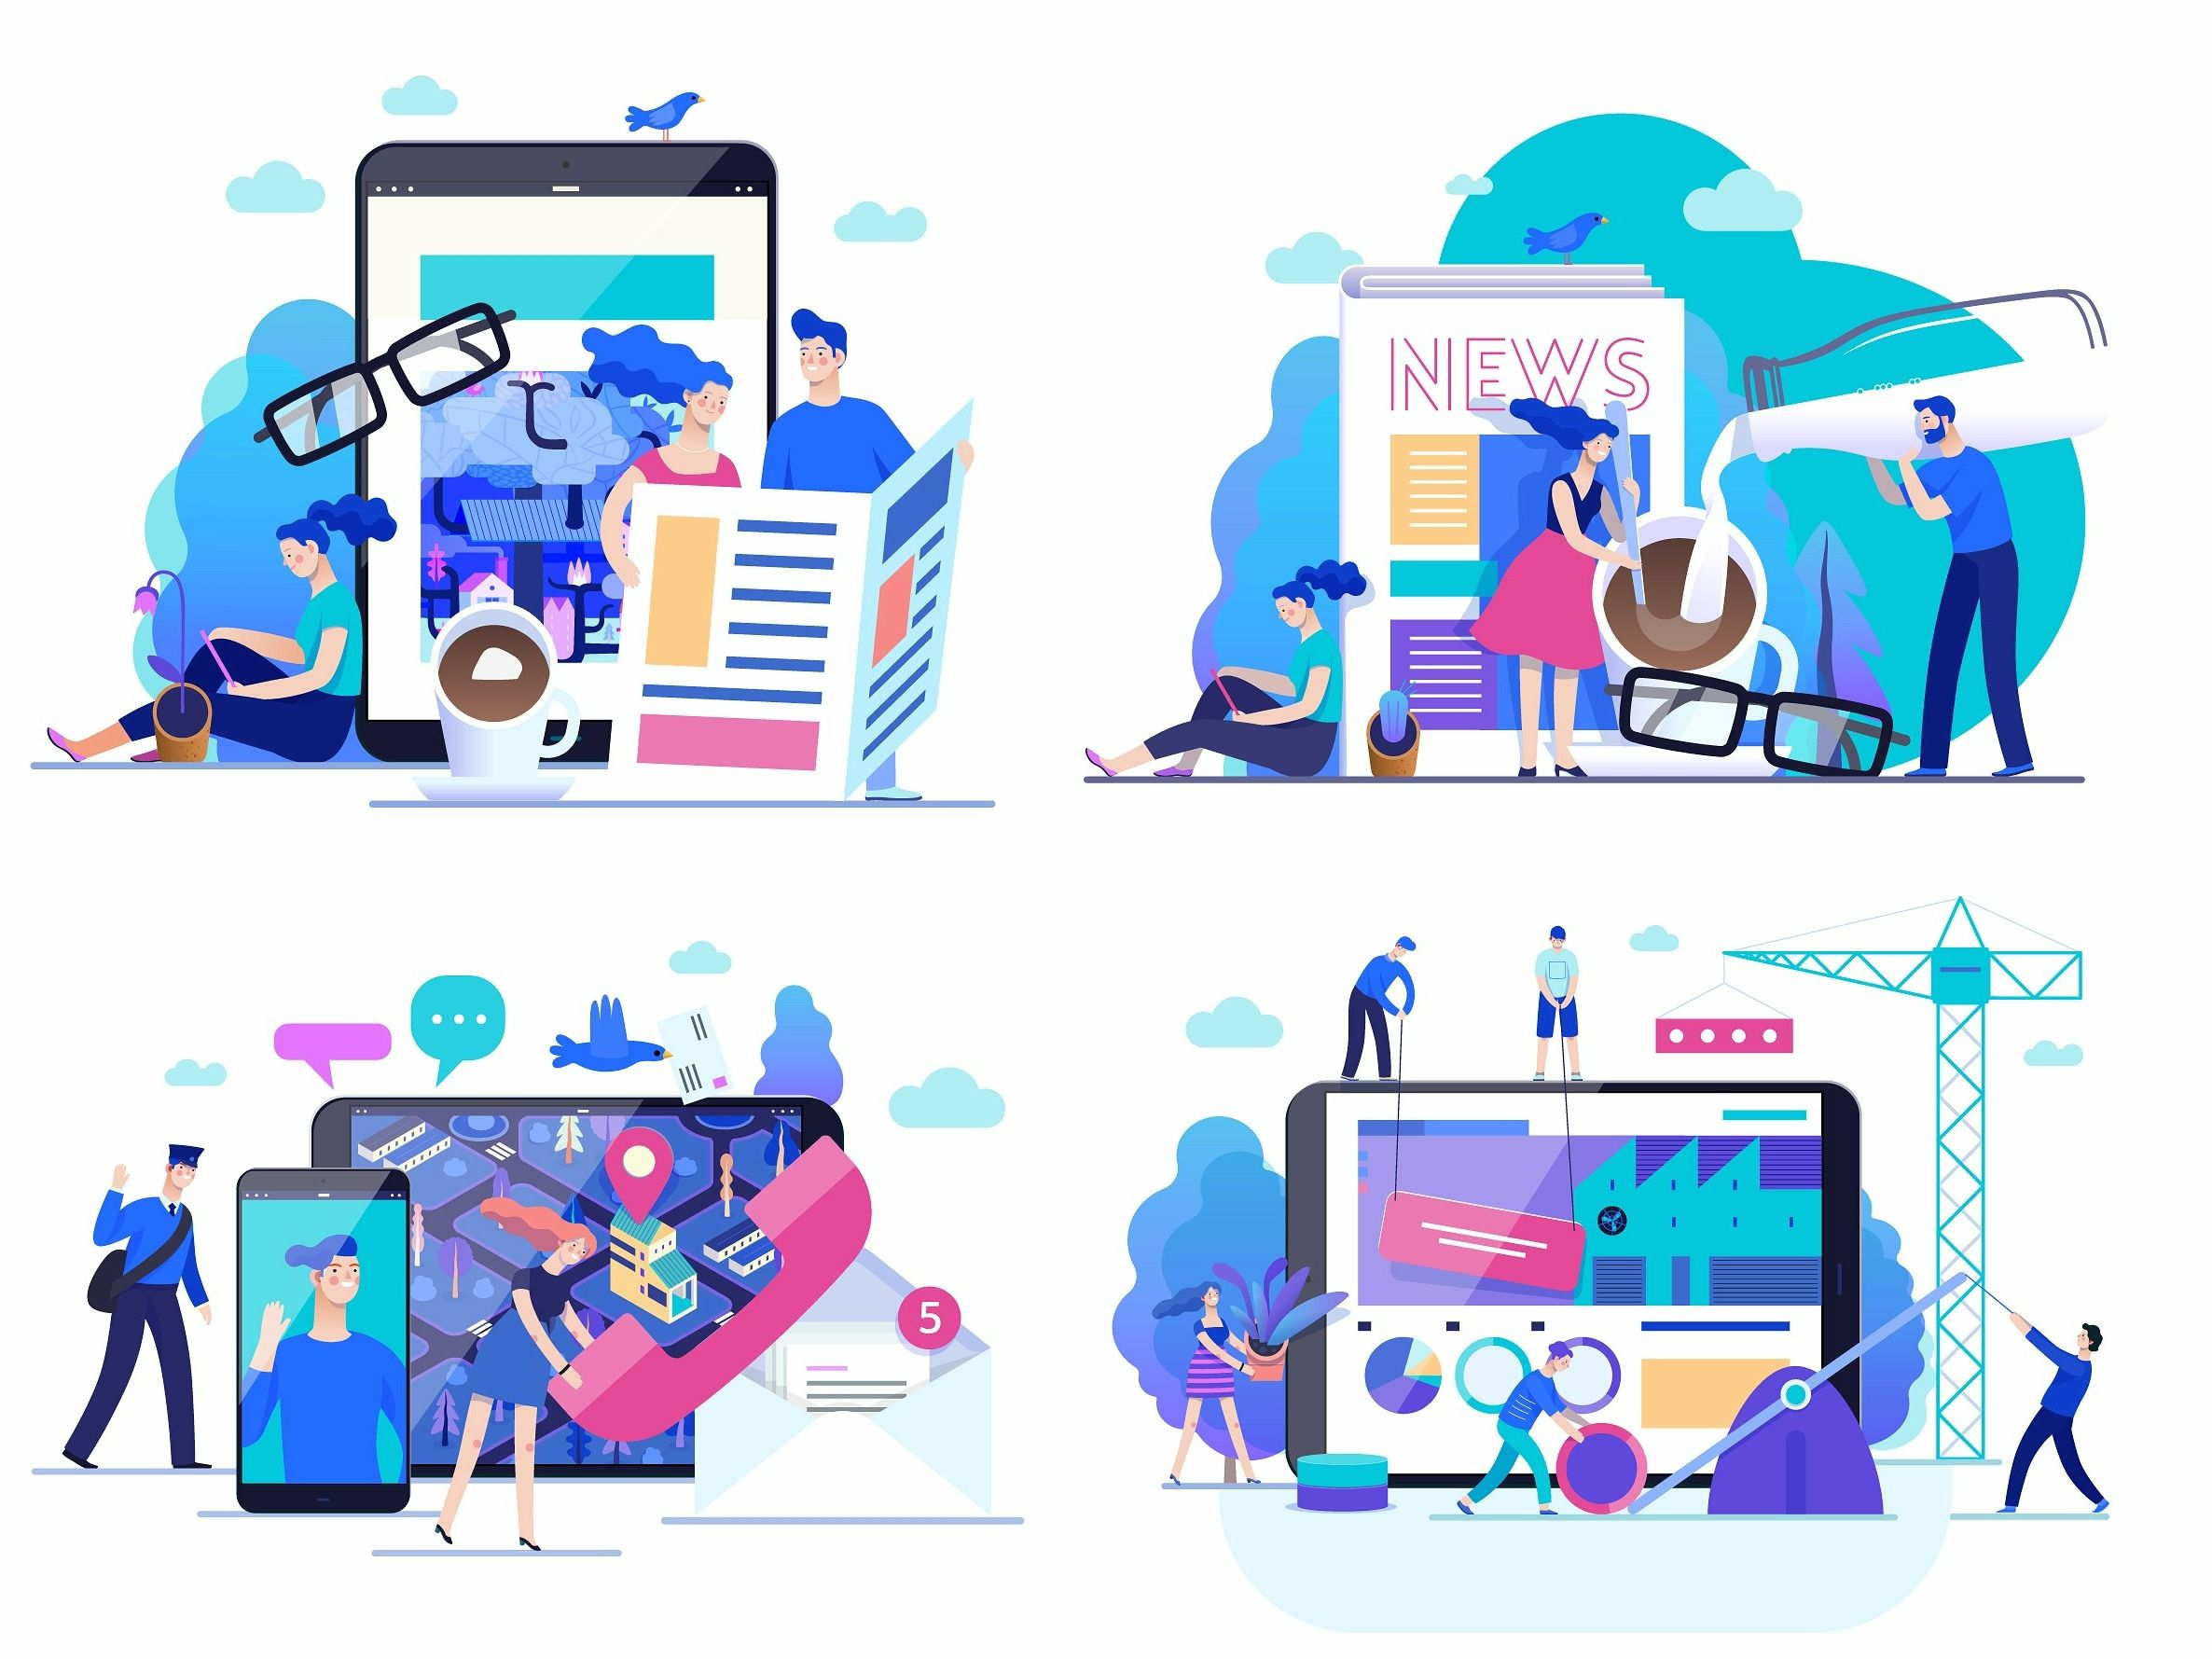 Company Website Vector Illustrations By Web Elements Website Illustration Vector Illustration Vector Illustration Design